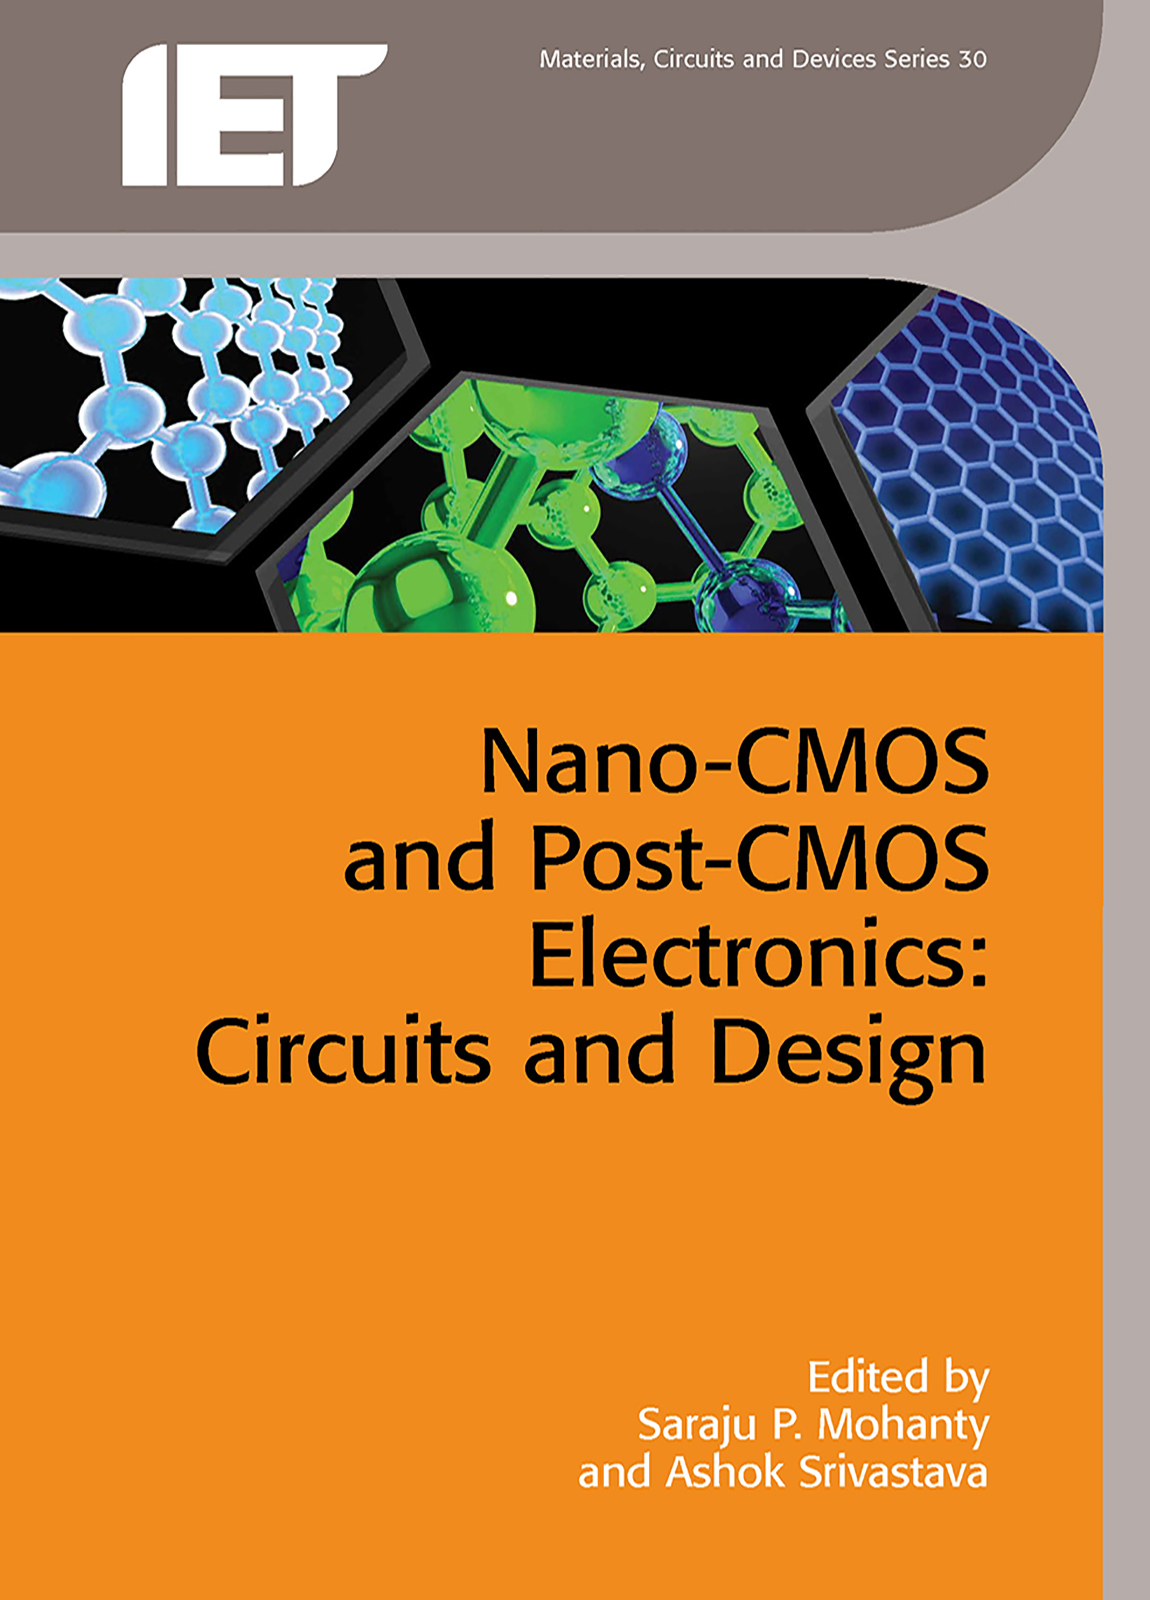 Nano-CMOS and Post-CMOS Electronics: Circuits and Design, The Institute of Engineering and Technology (IET), 2016